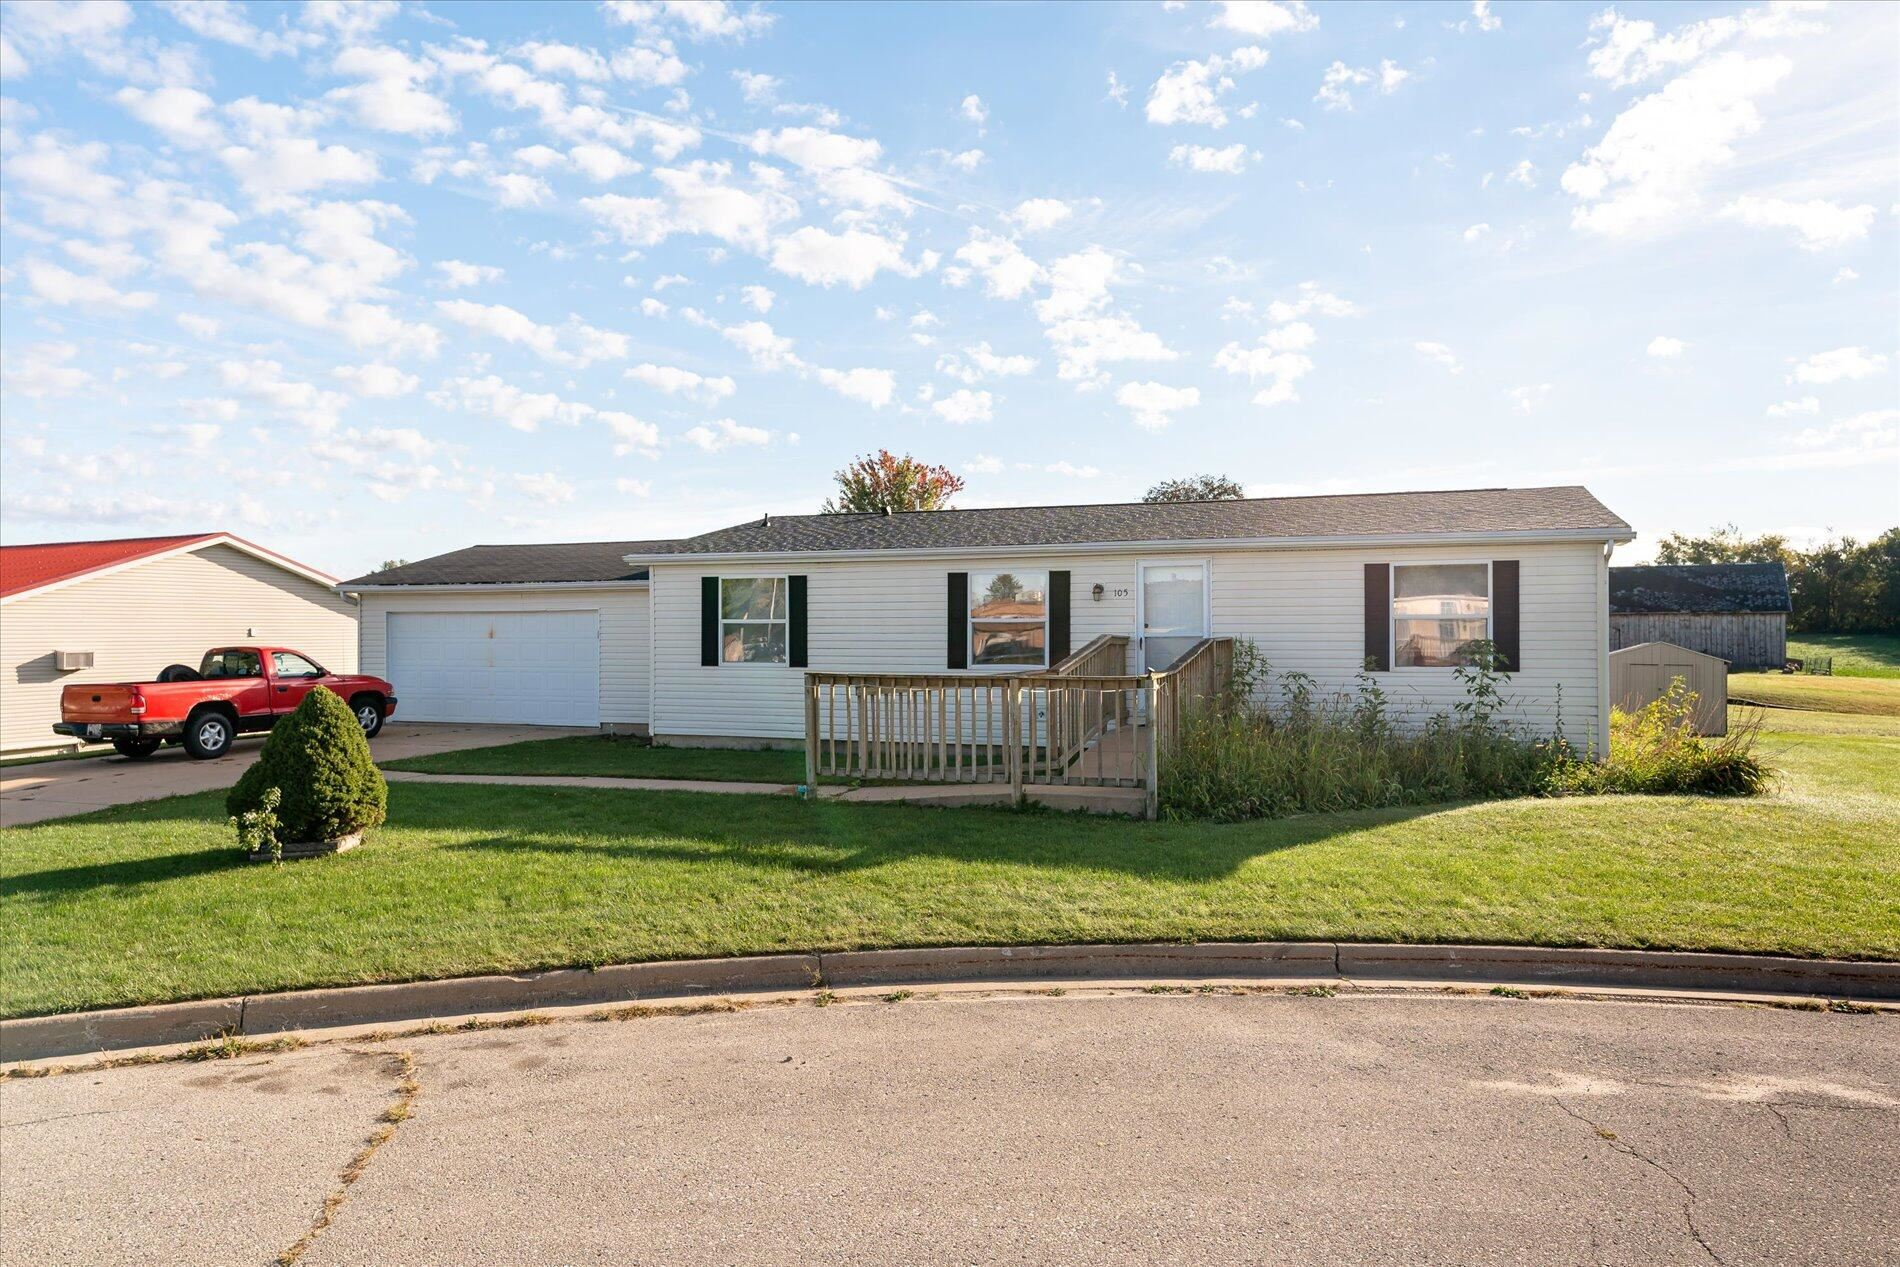 105 Norseland Ct, Westby, WI 54667 - MLS#: 1765092